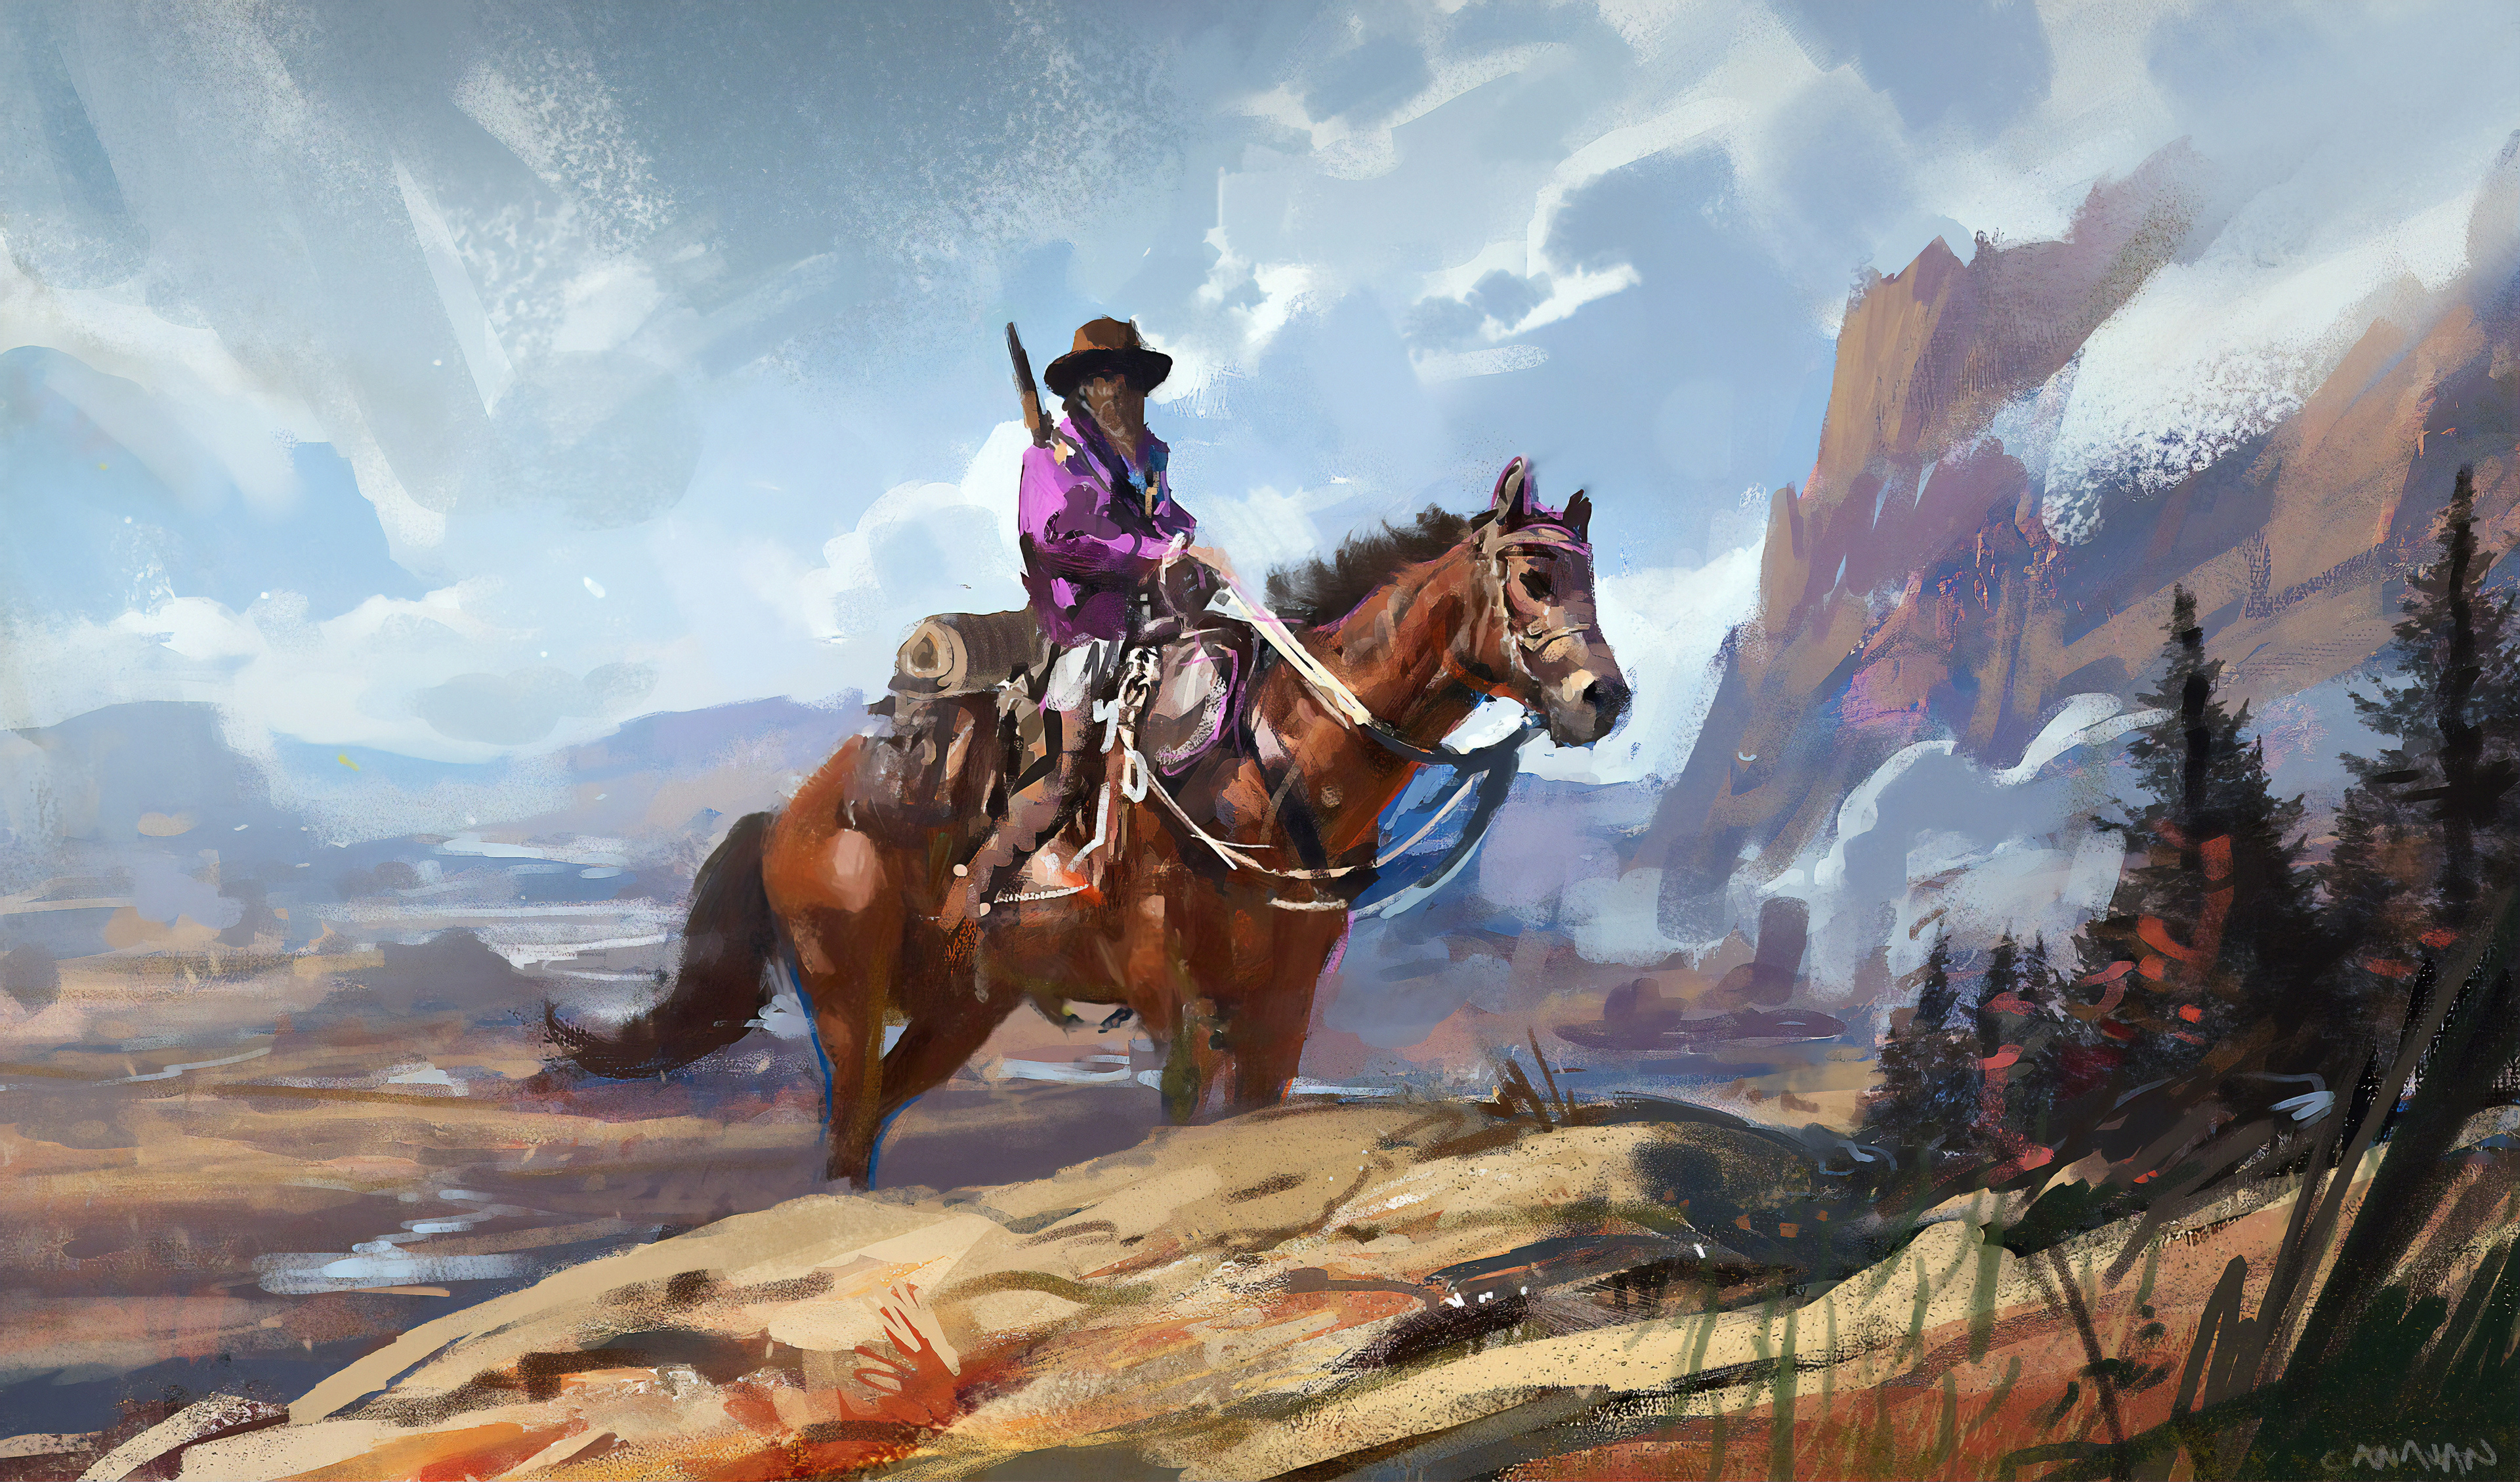 Cowboy On Horse Art Hd Artist 4k Wallpapers Images Backgrounds